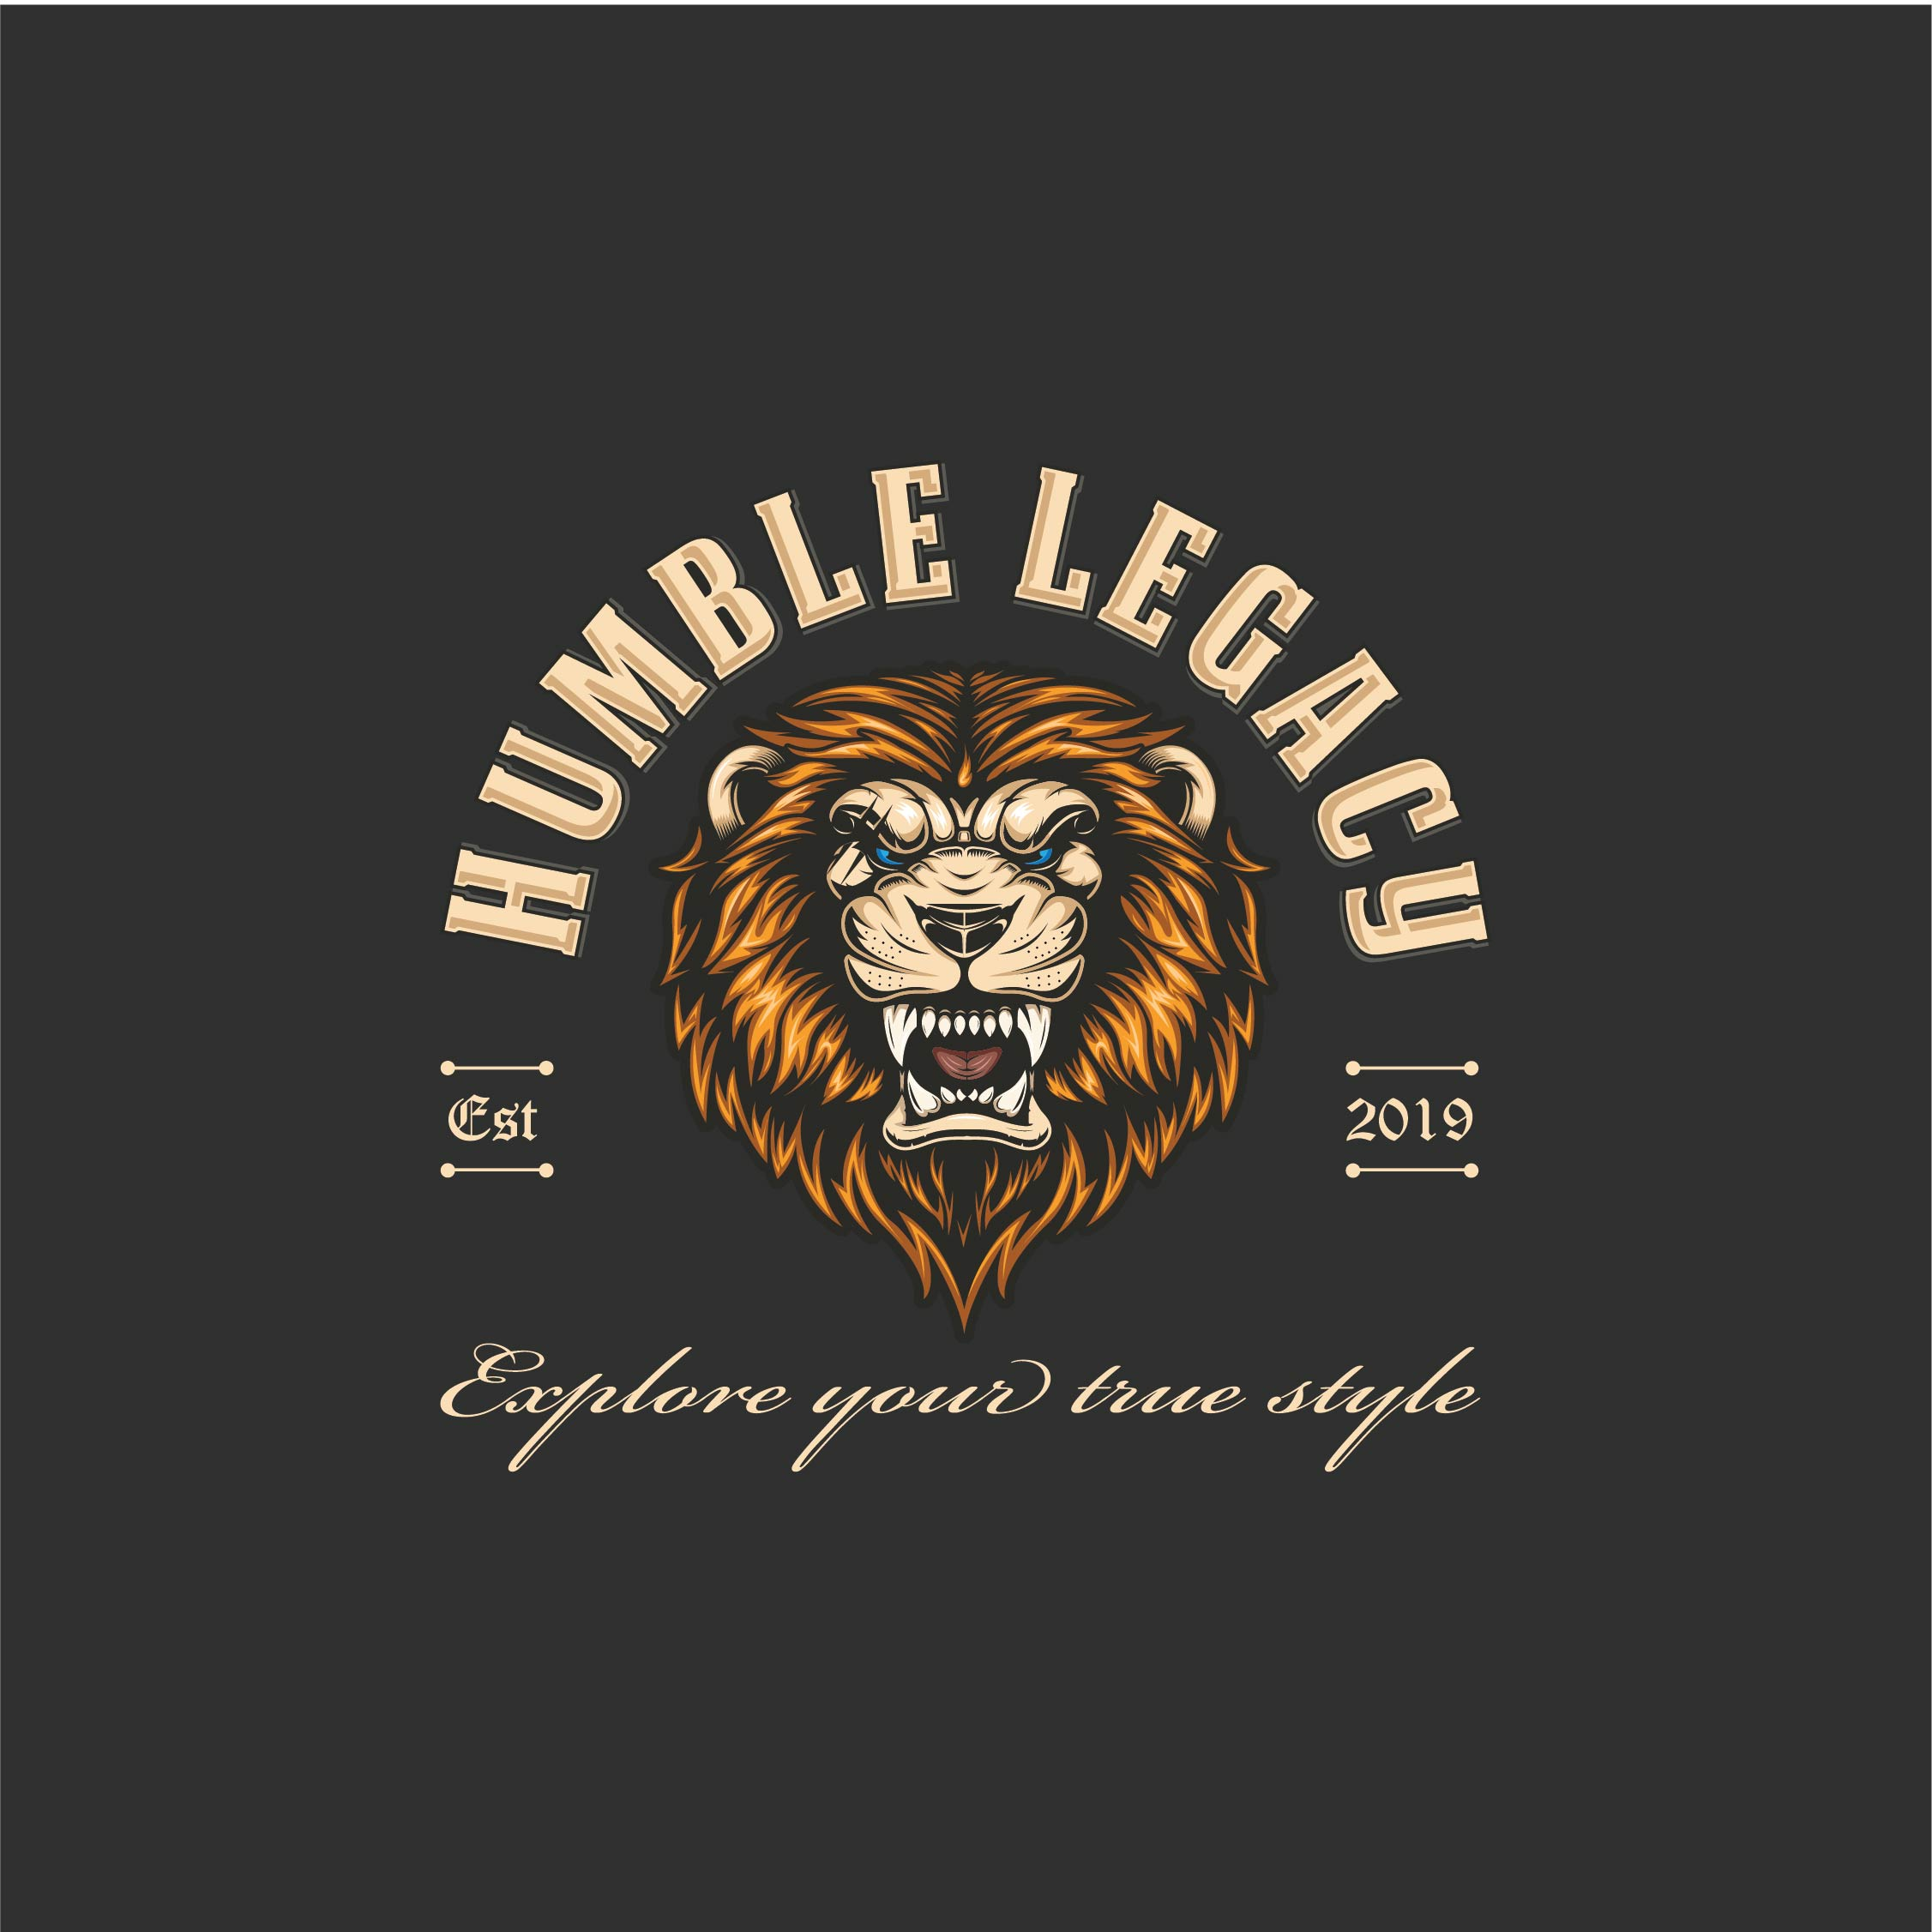 Humble legacy_Instagram